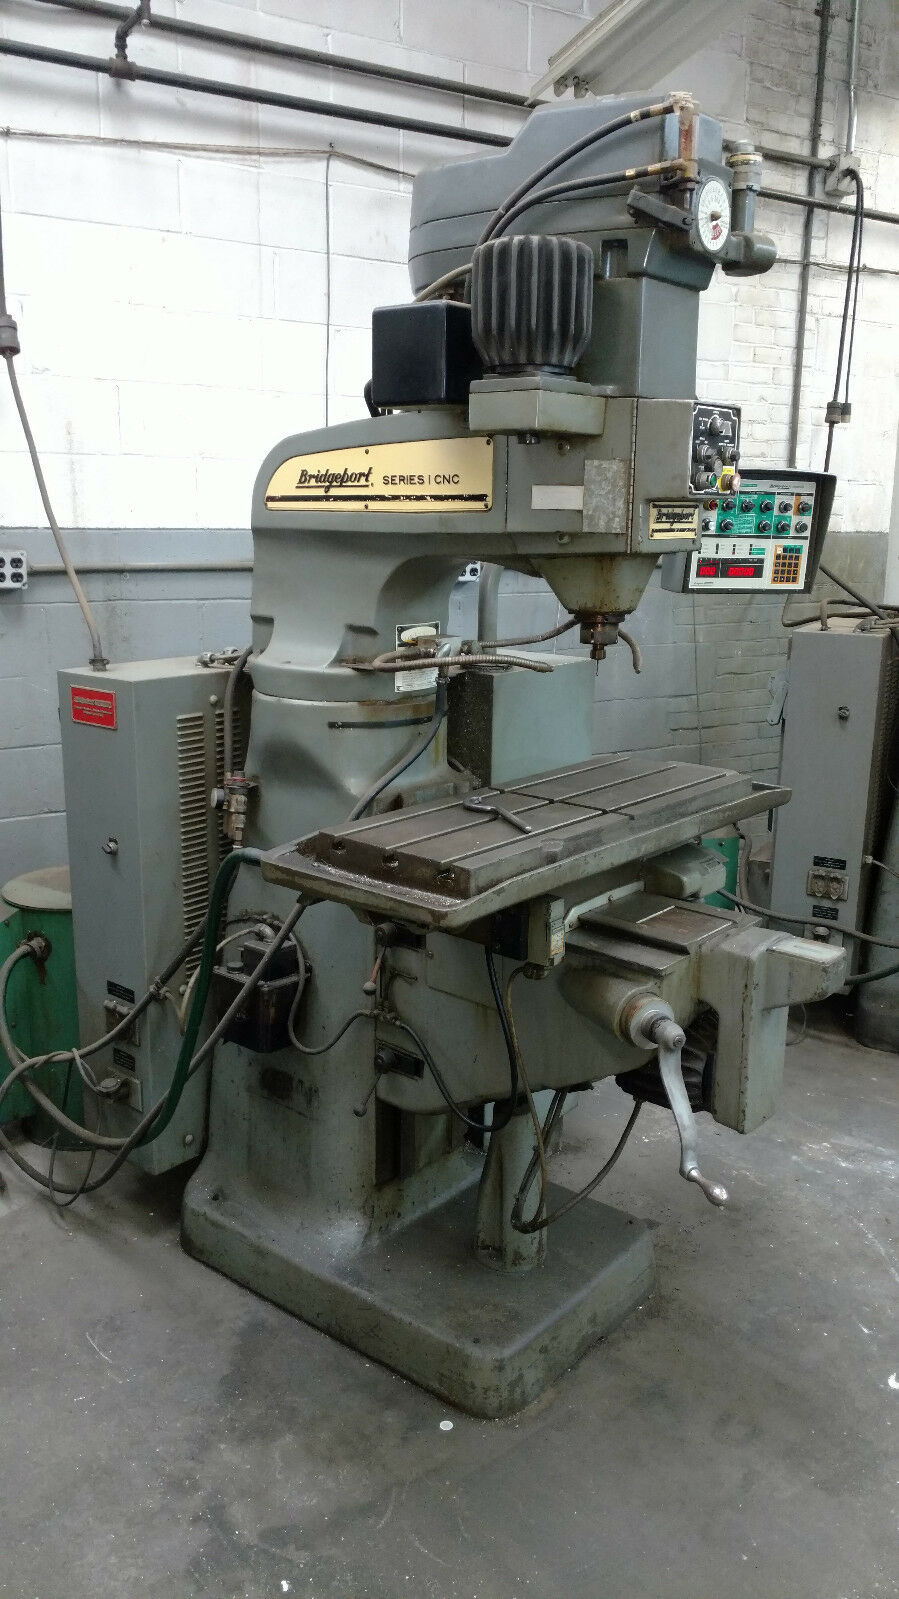 Bridgeport Series 1 Cnc Vertical Mill Milling Machine 3 Axis 1 of 8Only 1  available ...